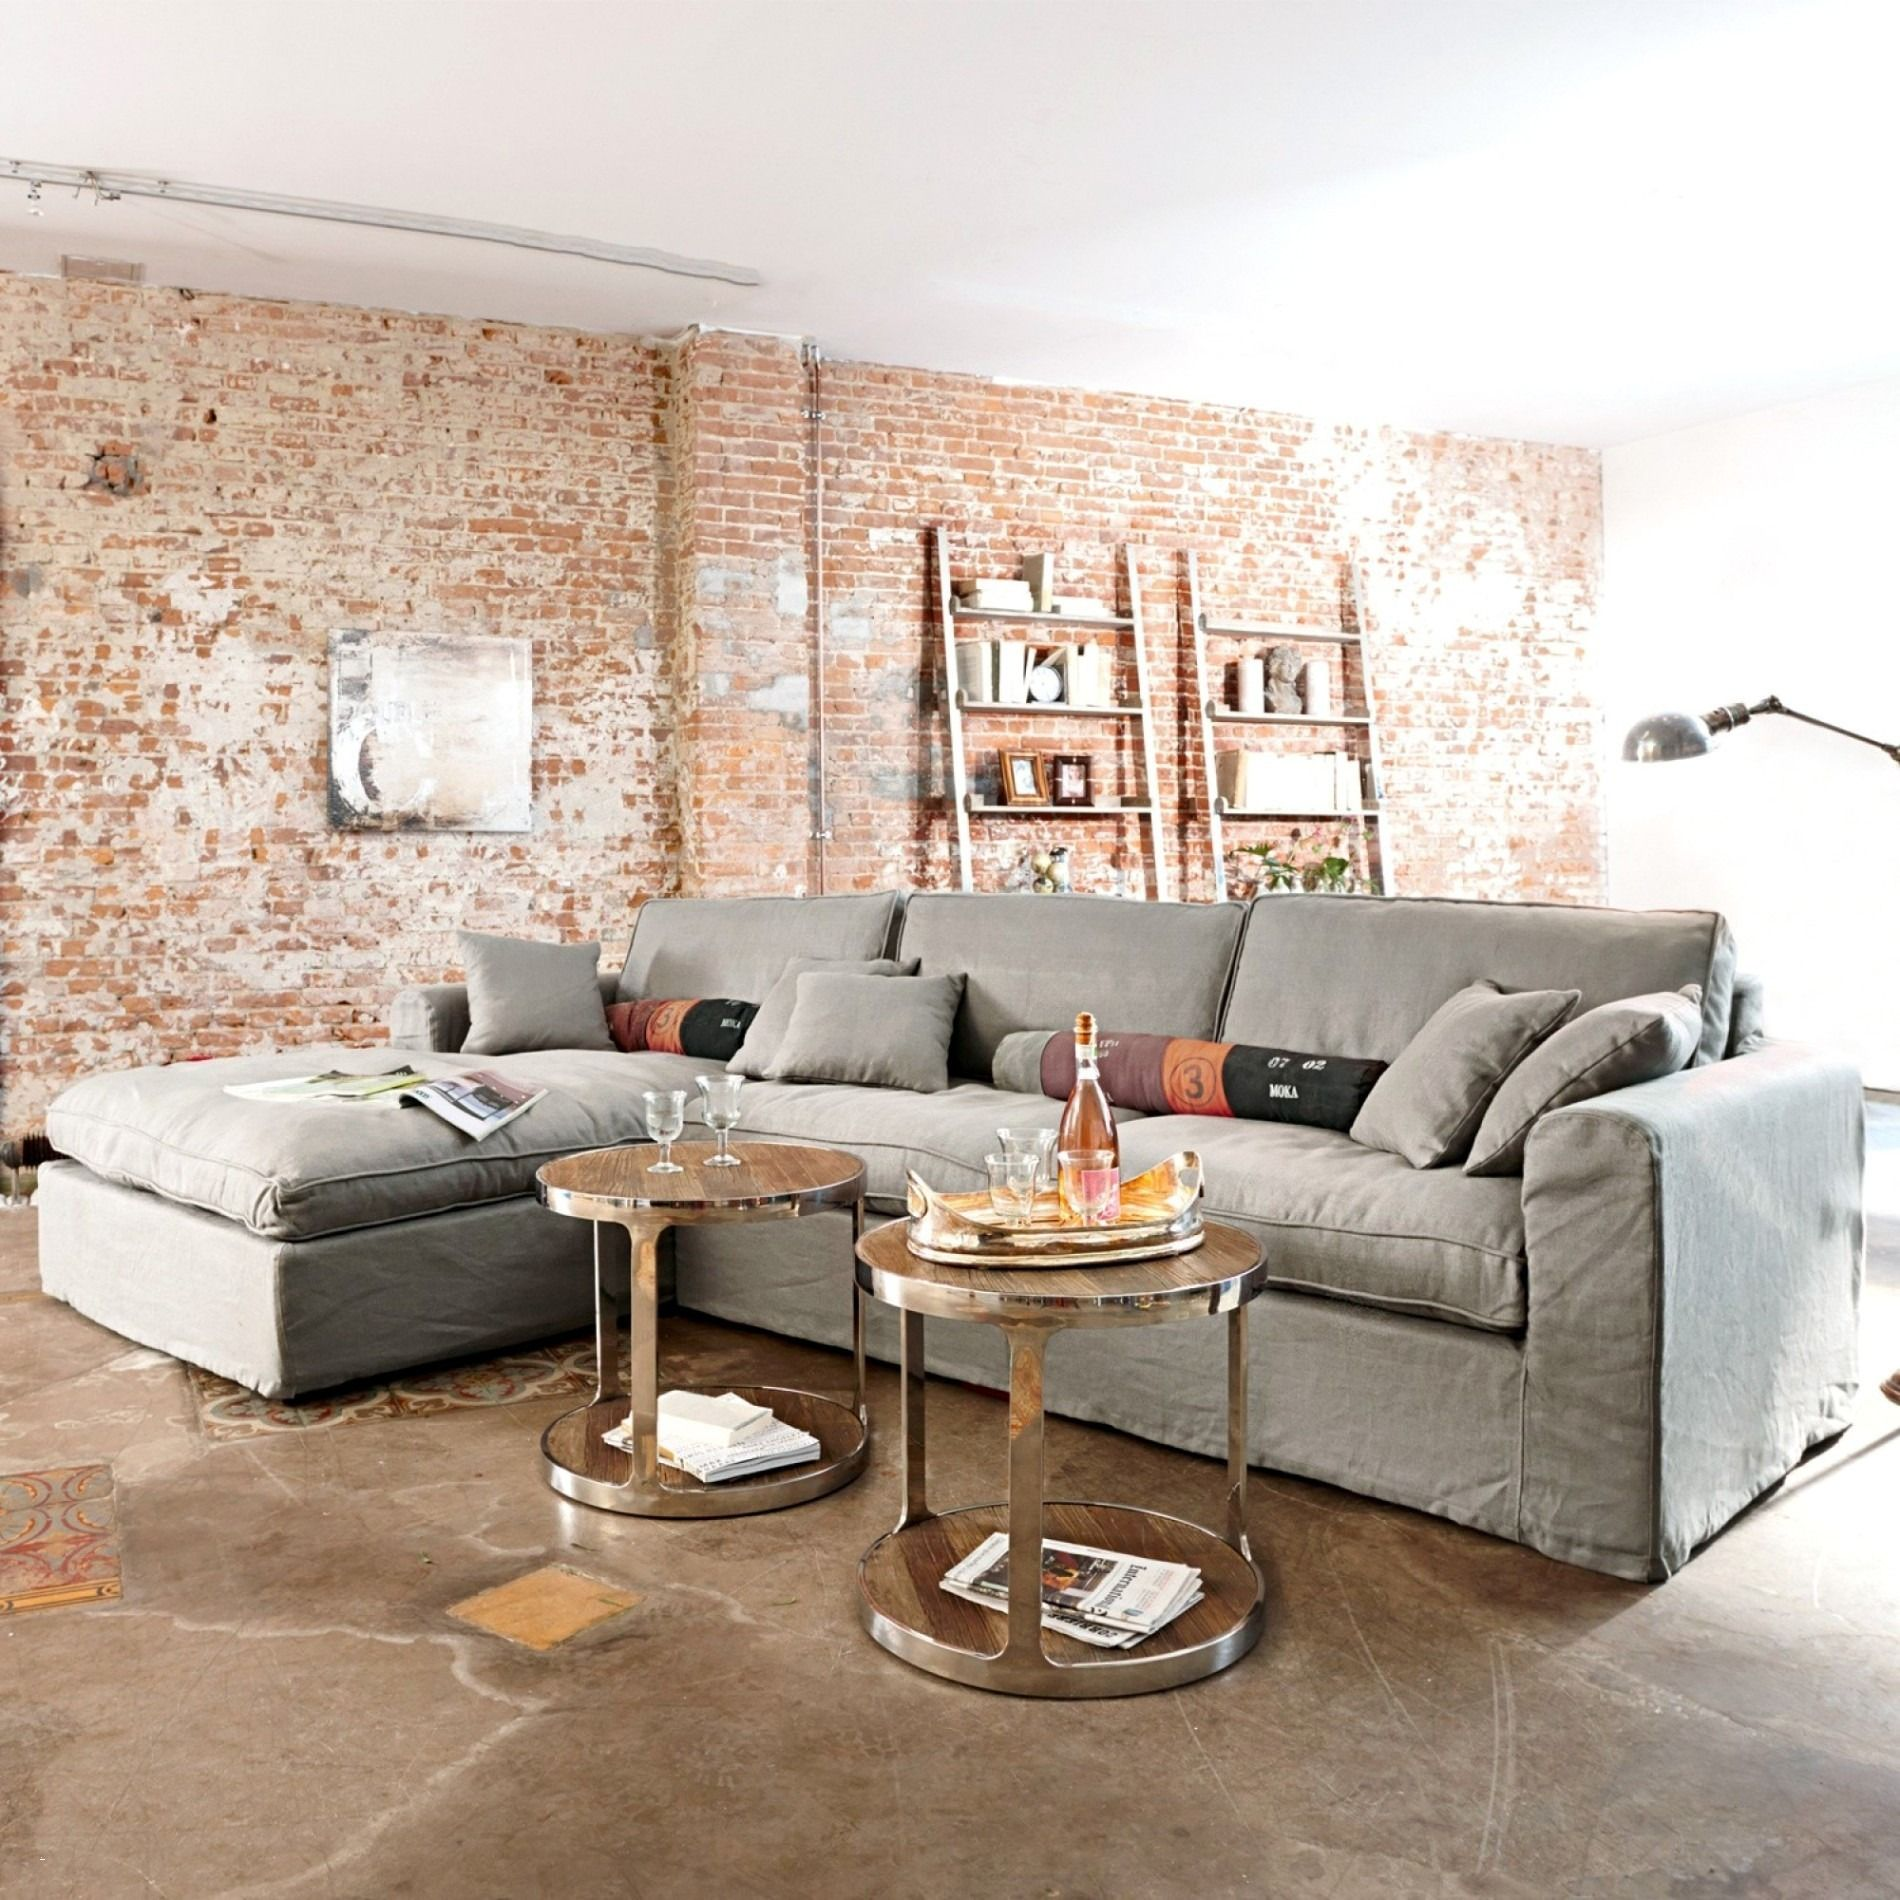 Big Sofa Landhaus 22 Neue Big Sofa Tisch In 2019 Sofa Pinterest Sofa Big